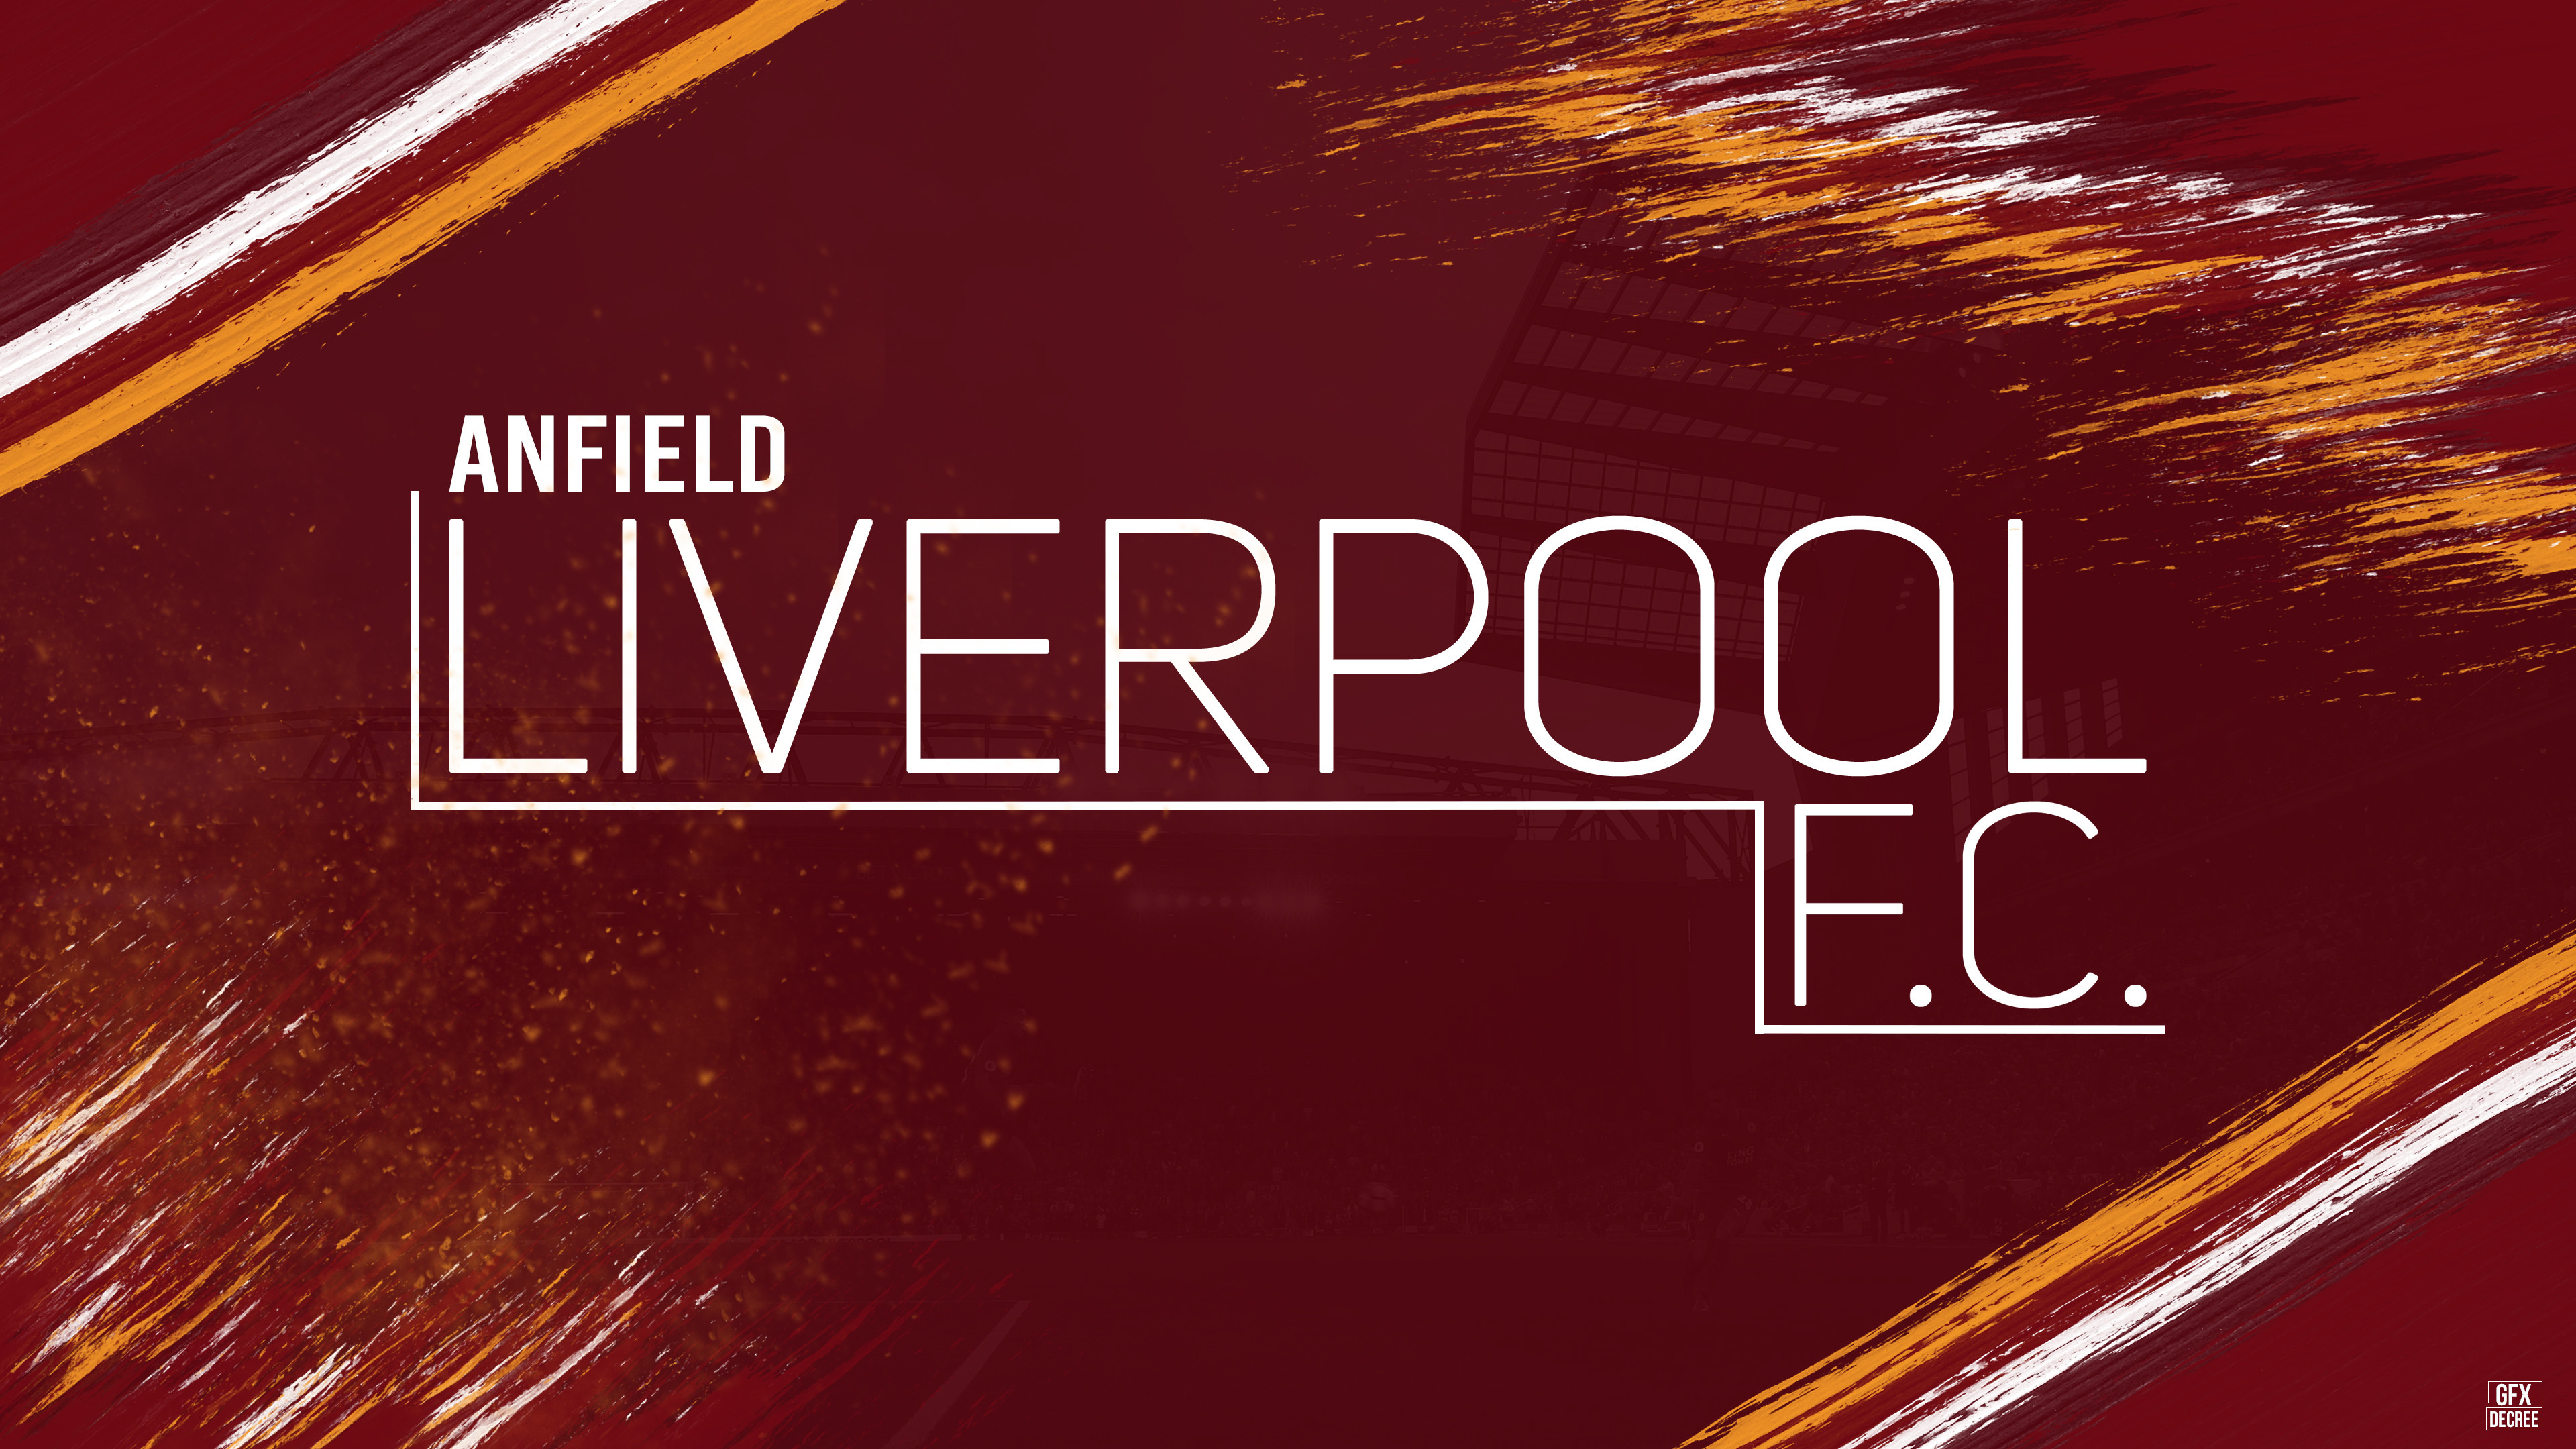 Top Free Liverpool Backgrounds: Anfield Wallpapers (70+ Images